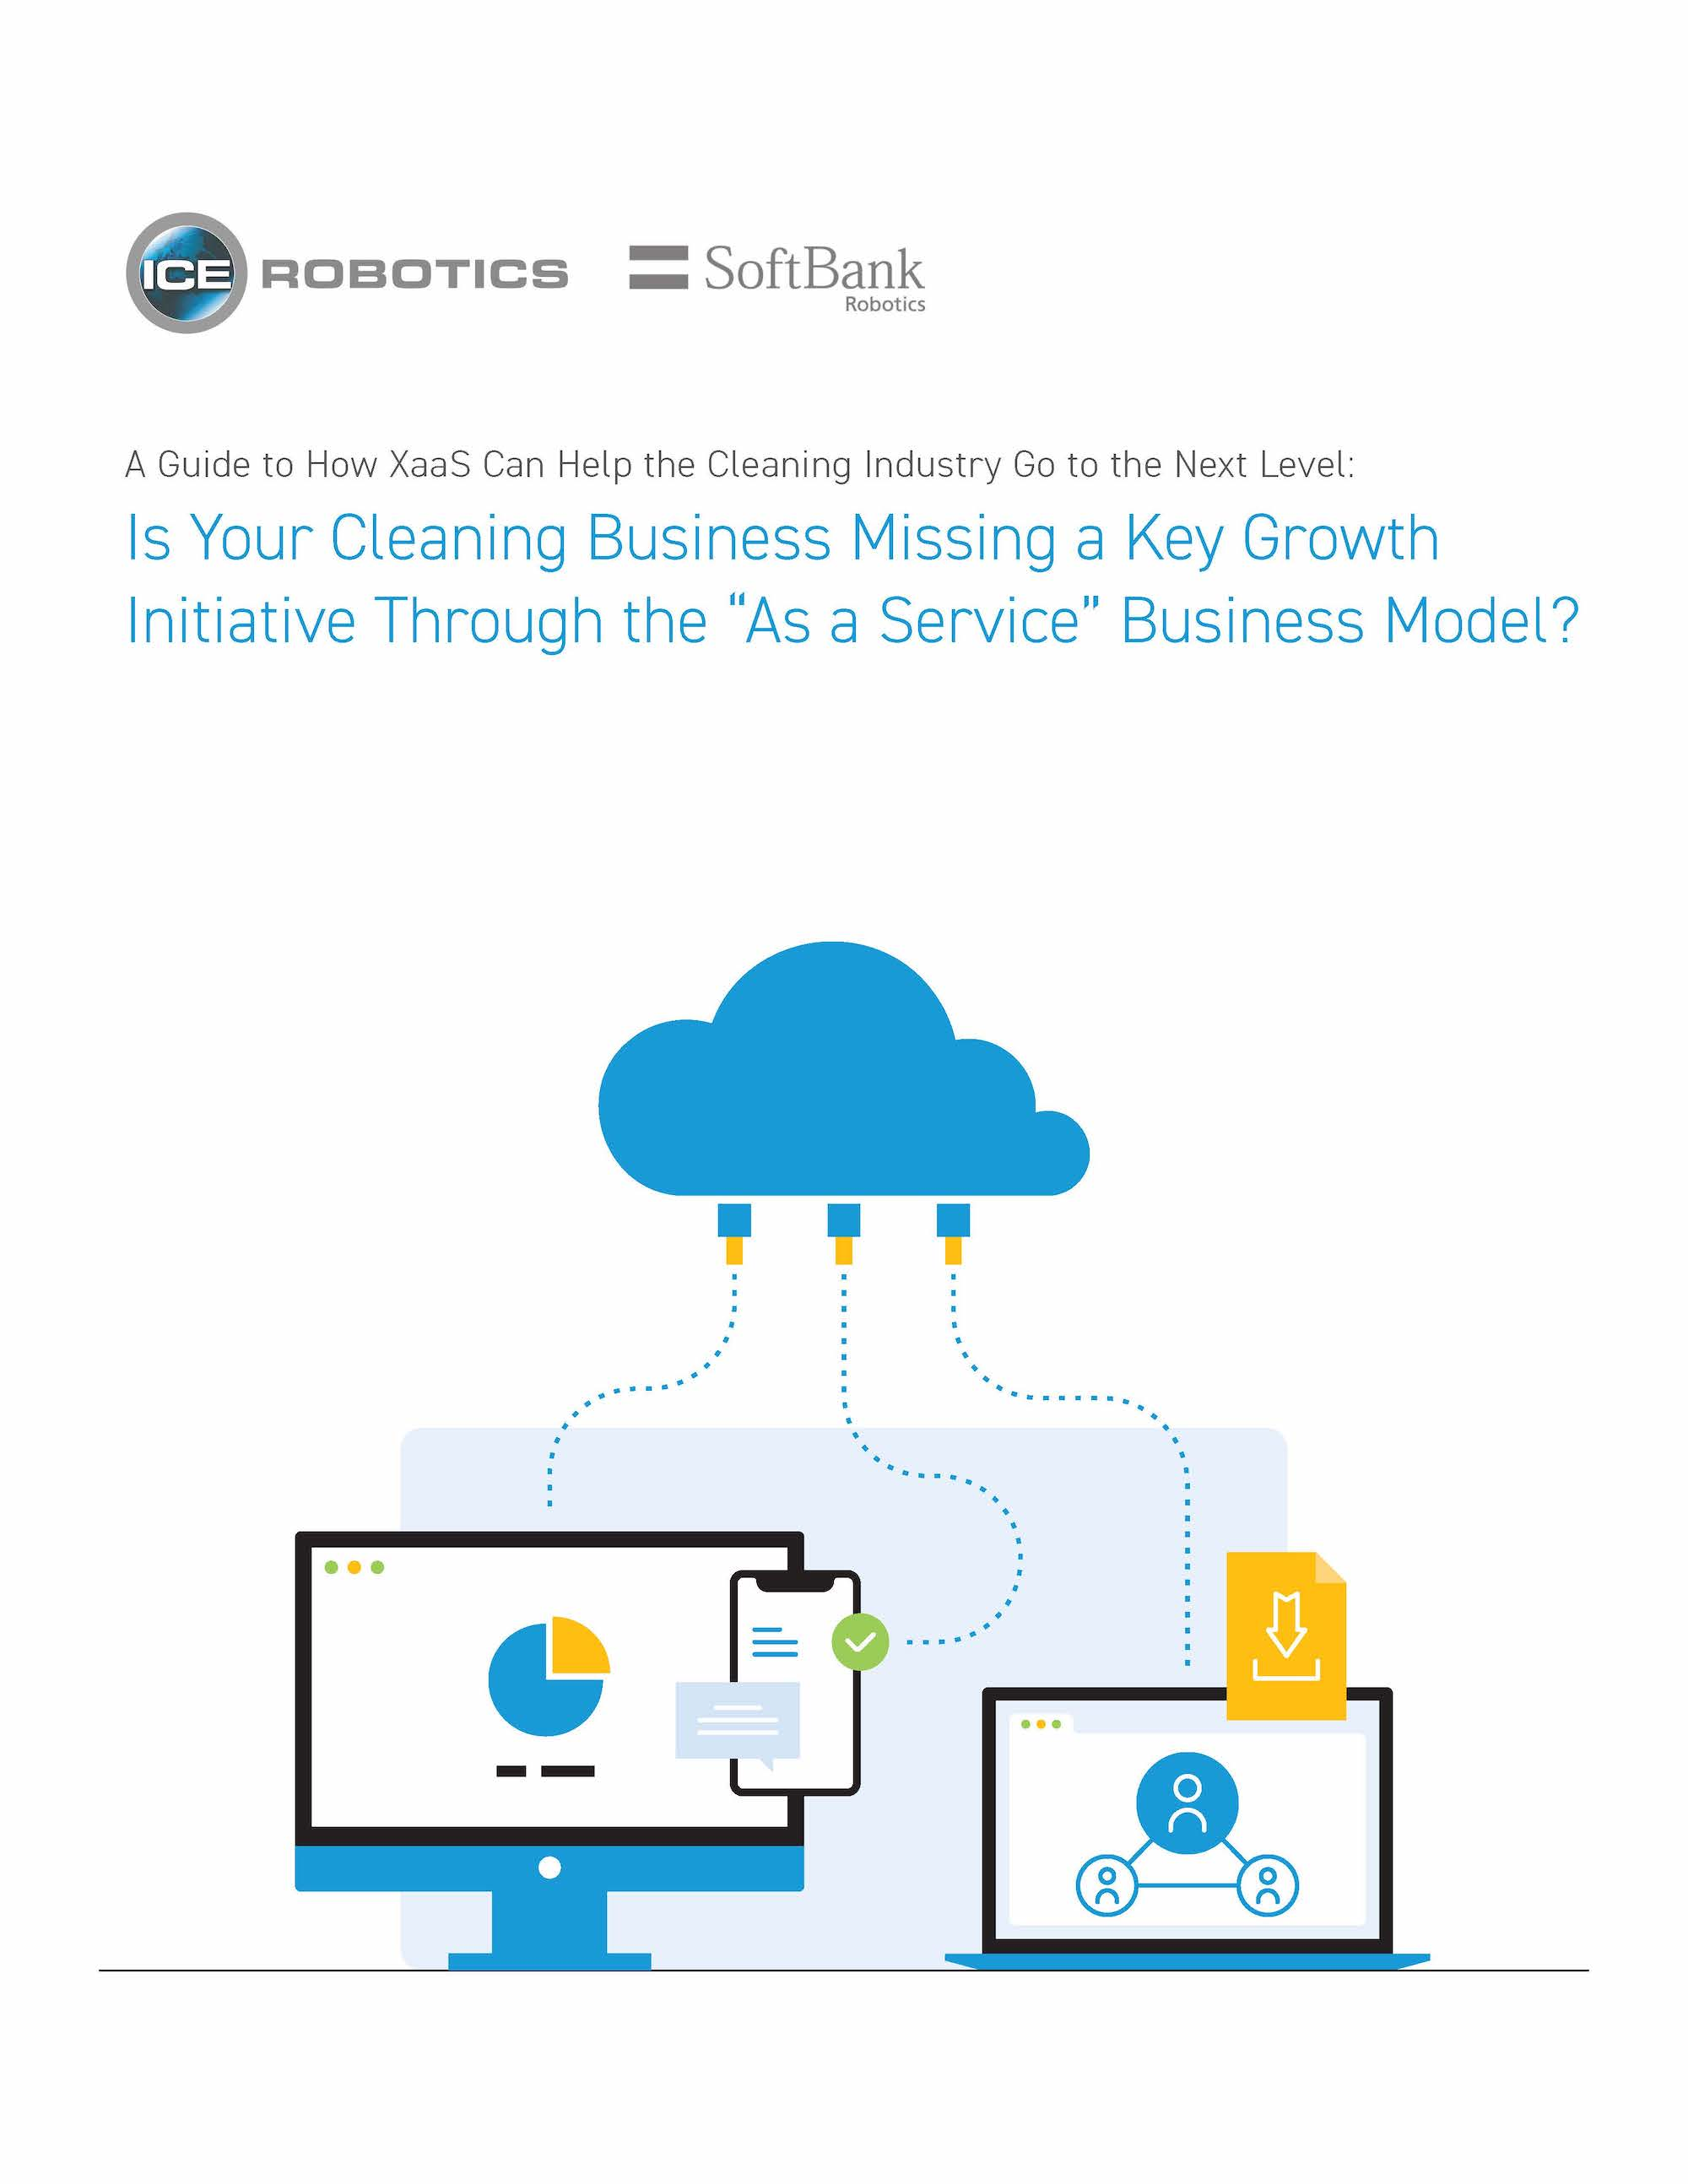 A Guide to How XaaS Can Help the Cleaning Industry go to the Next Level